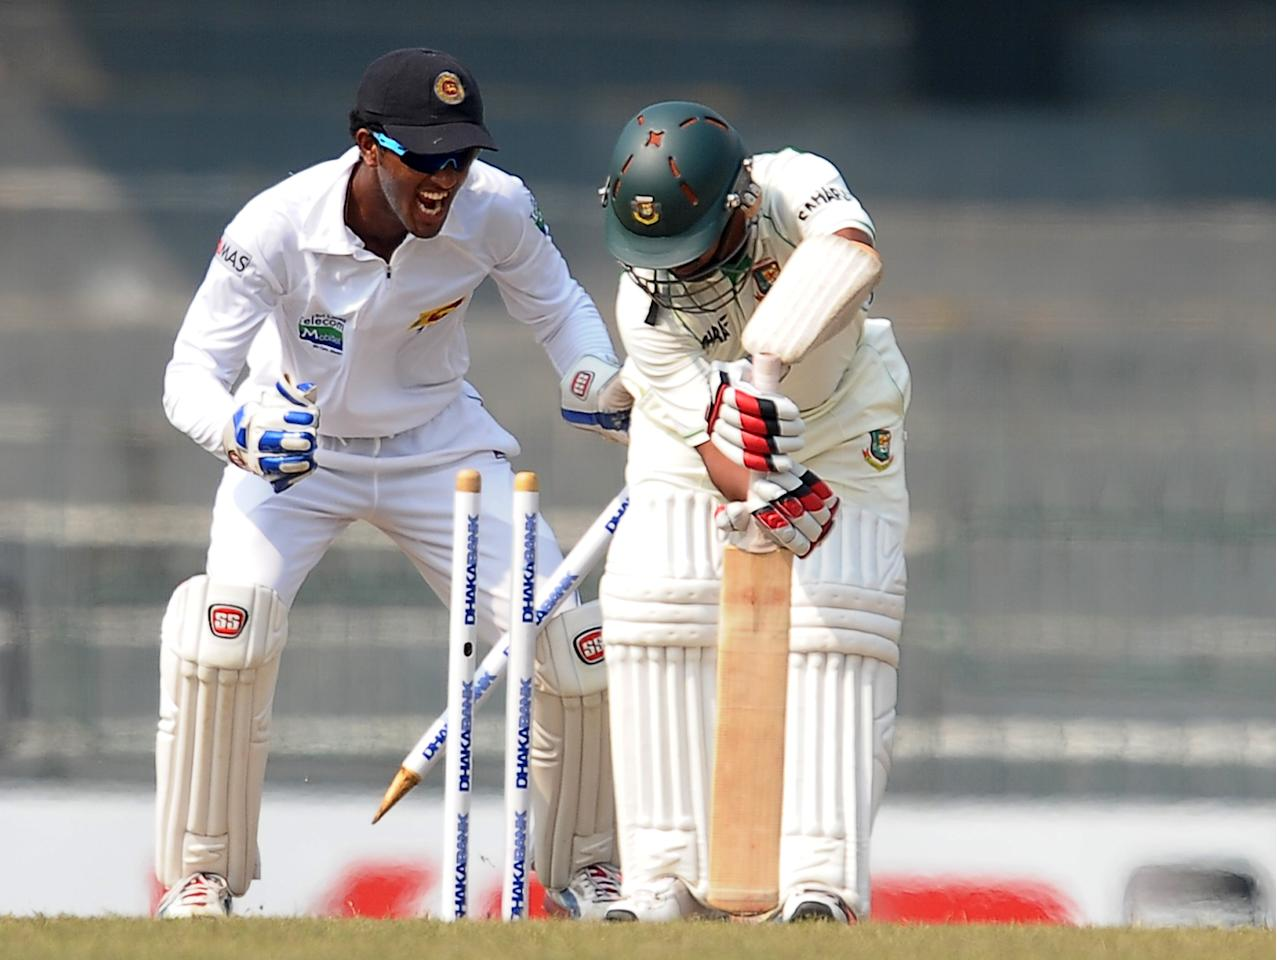 Bangladeshi cricketer Mohammad Ashraful (R) is dismissed by unseen Sri Lankan cricketer Rangana Herath as wicketkeeper Dinesh Chandimal (L) reacts during the third day of the second Test match between Sri Lanka and Bangladesh at the R. Premadasa Cricket Stadium in Colombo on March 18, 2013. AFP PHOTO/ LAKRUWAN WANNIARACHCHI